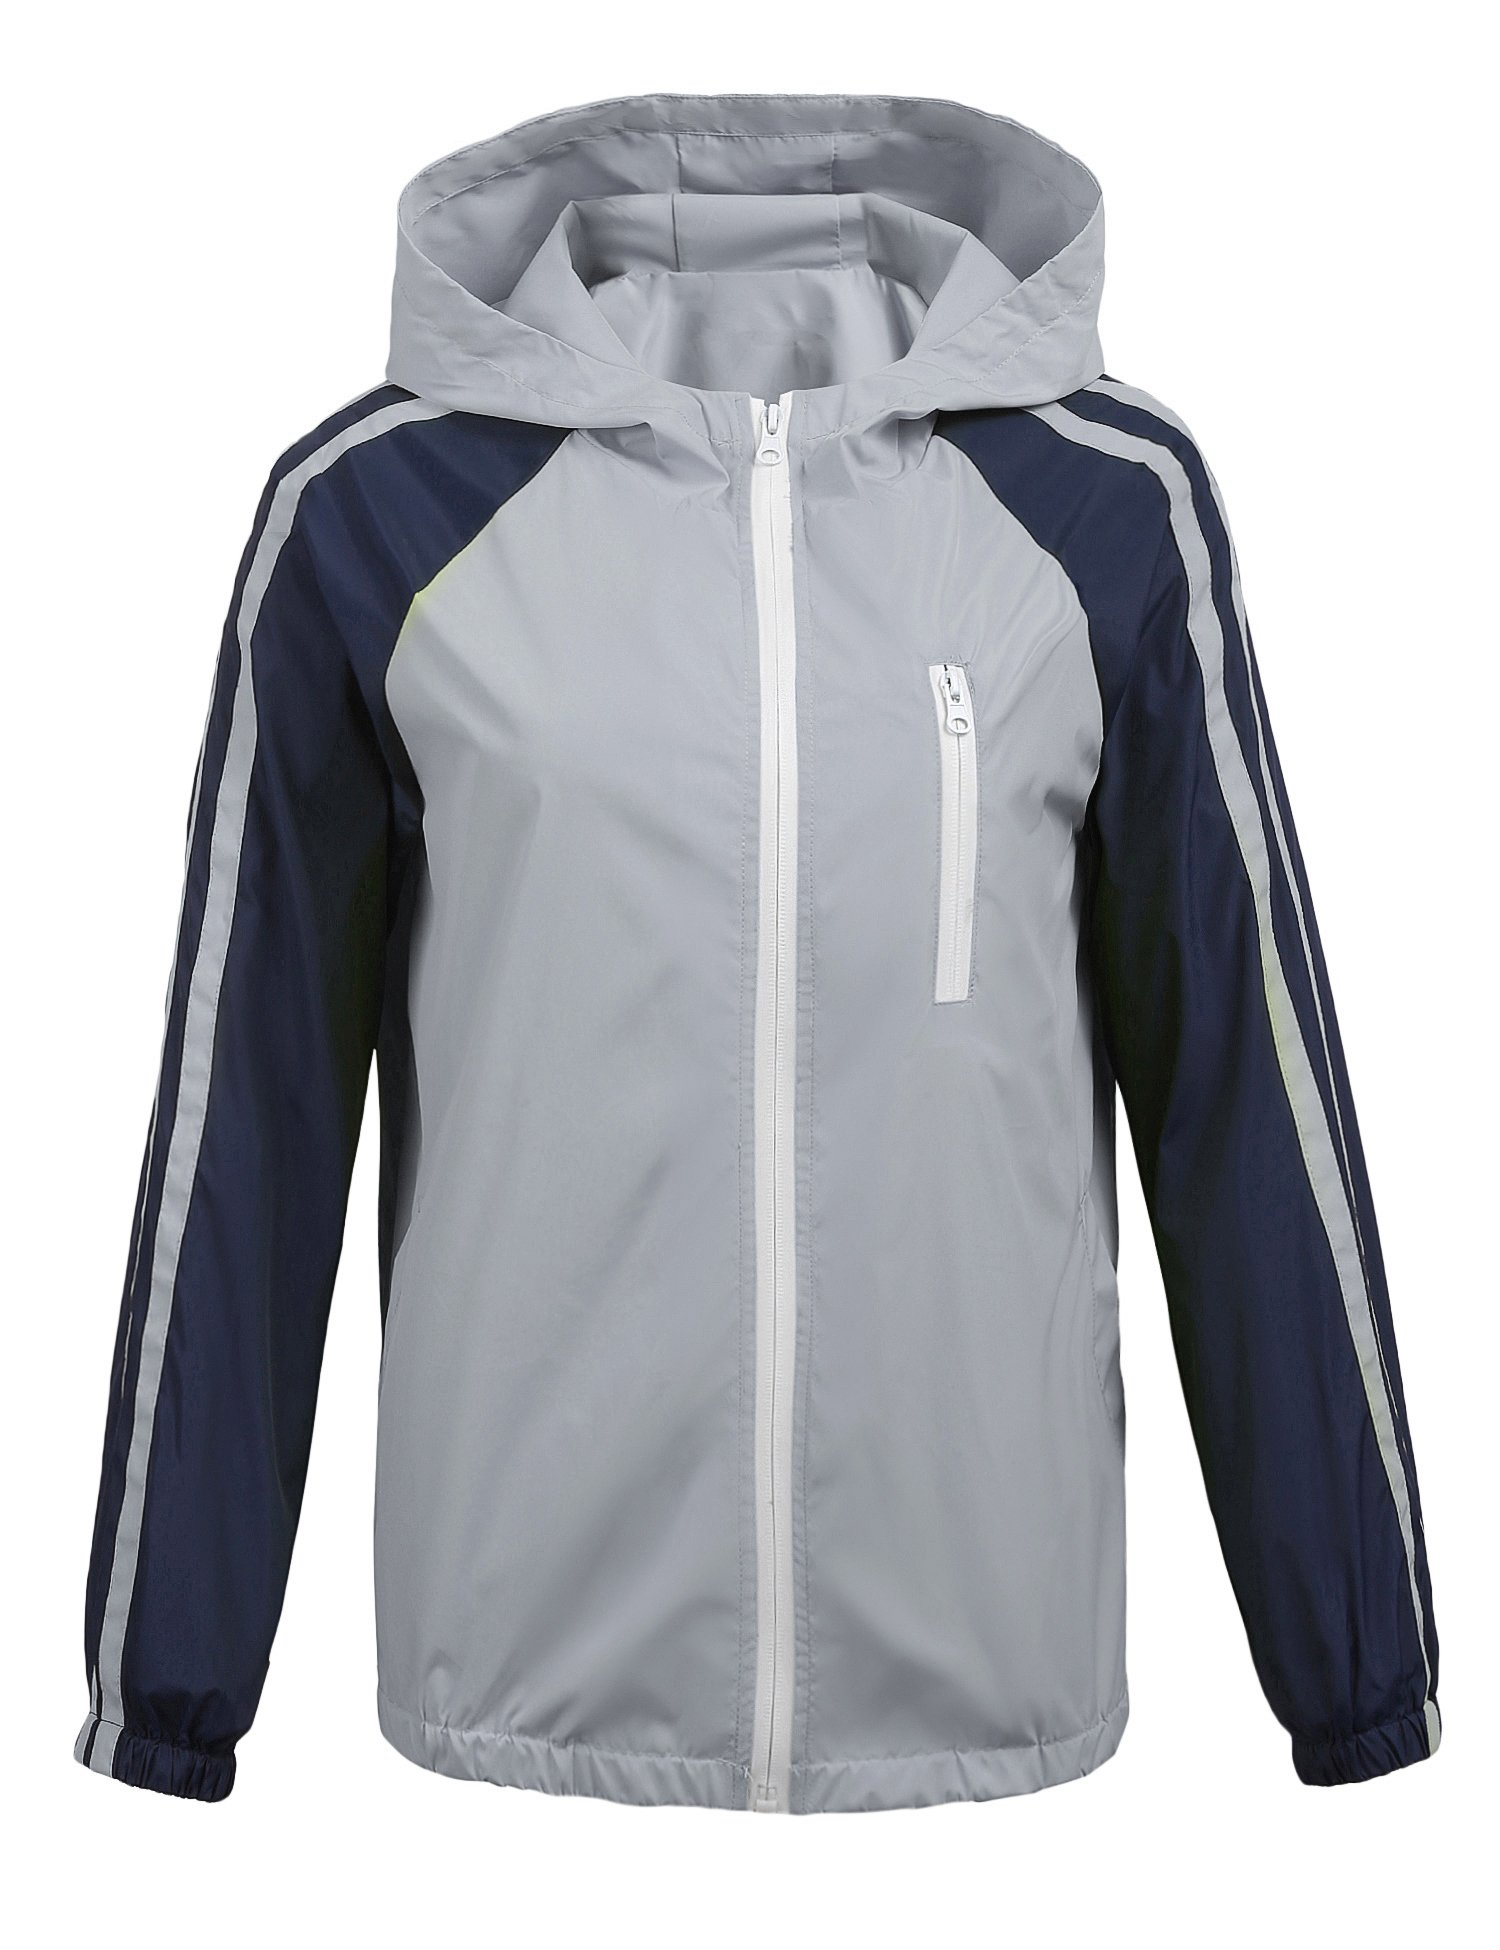 Donkap Women's Spring Windbreaker Waterproof Contrast Color Front-Zip Jacket